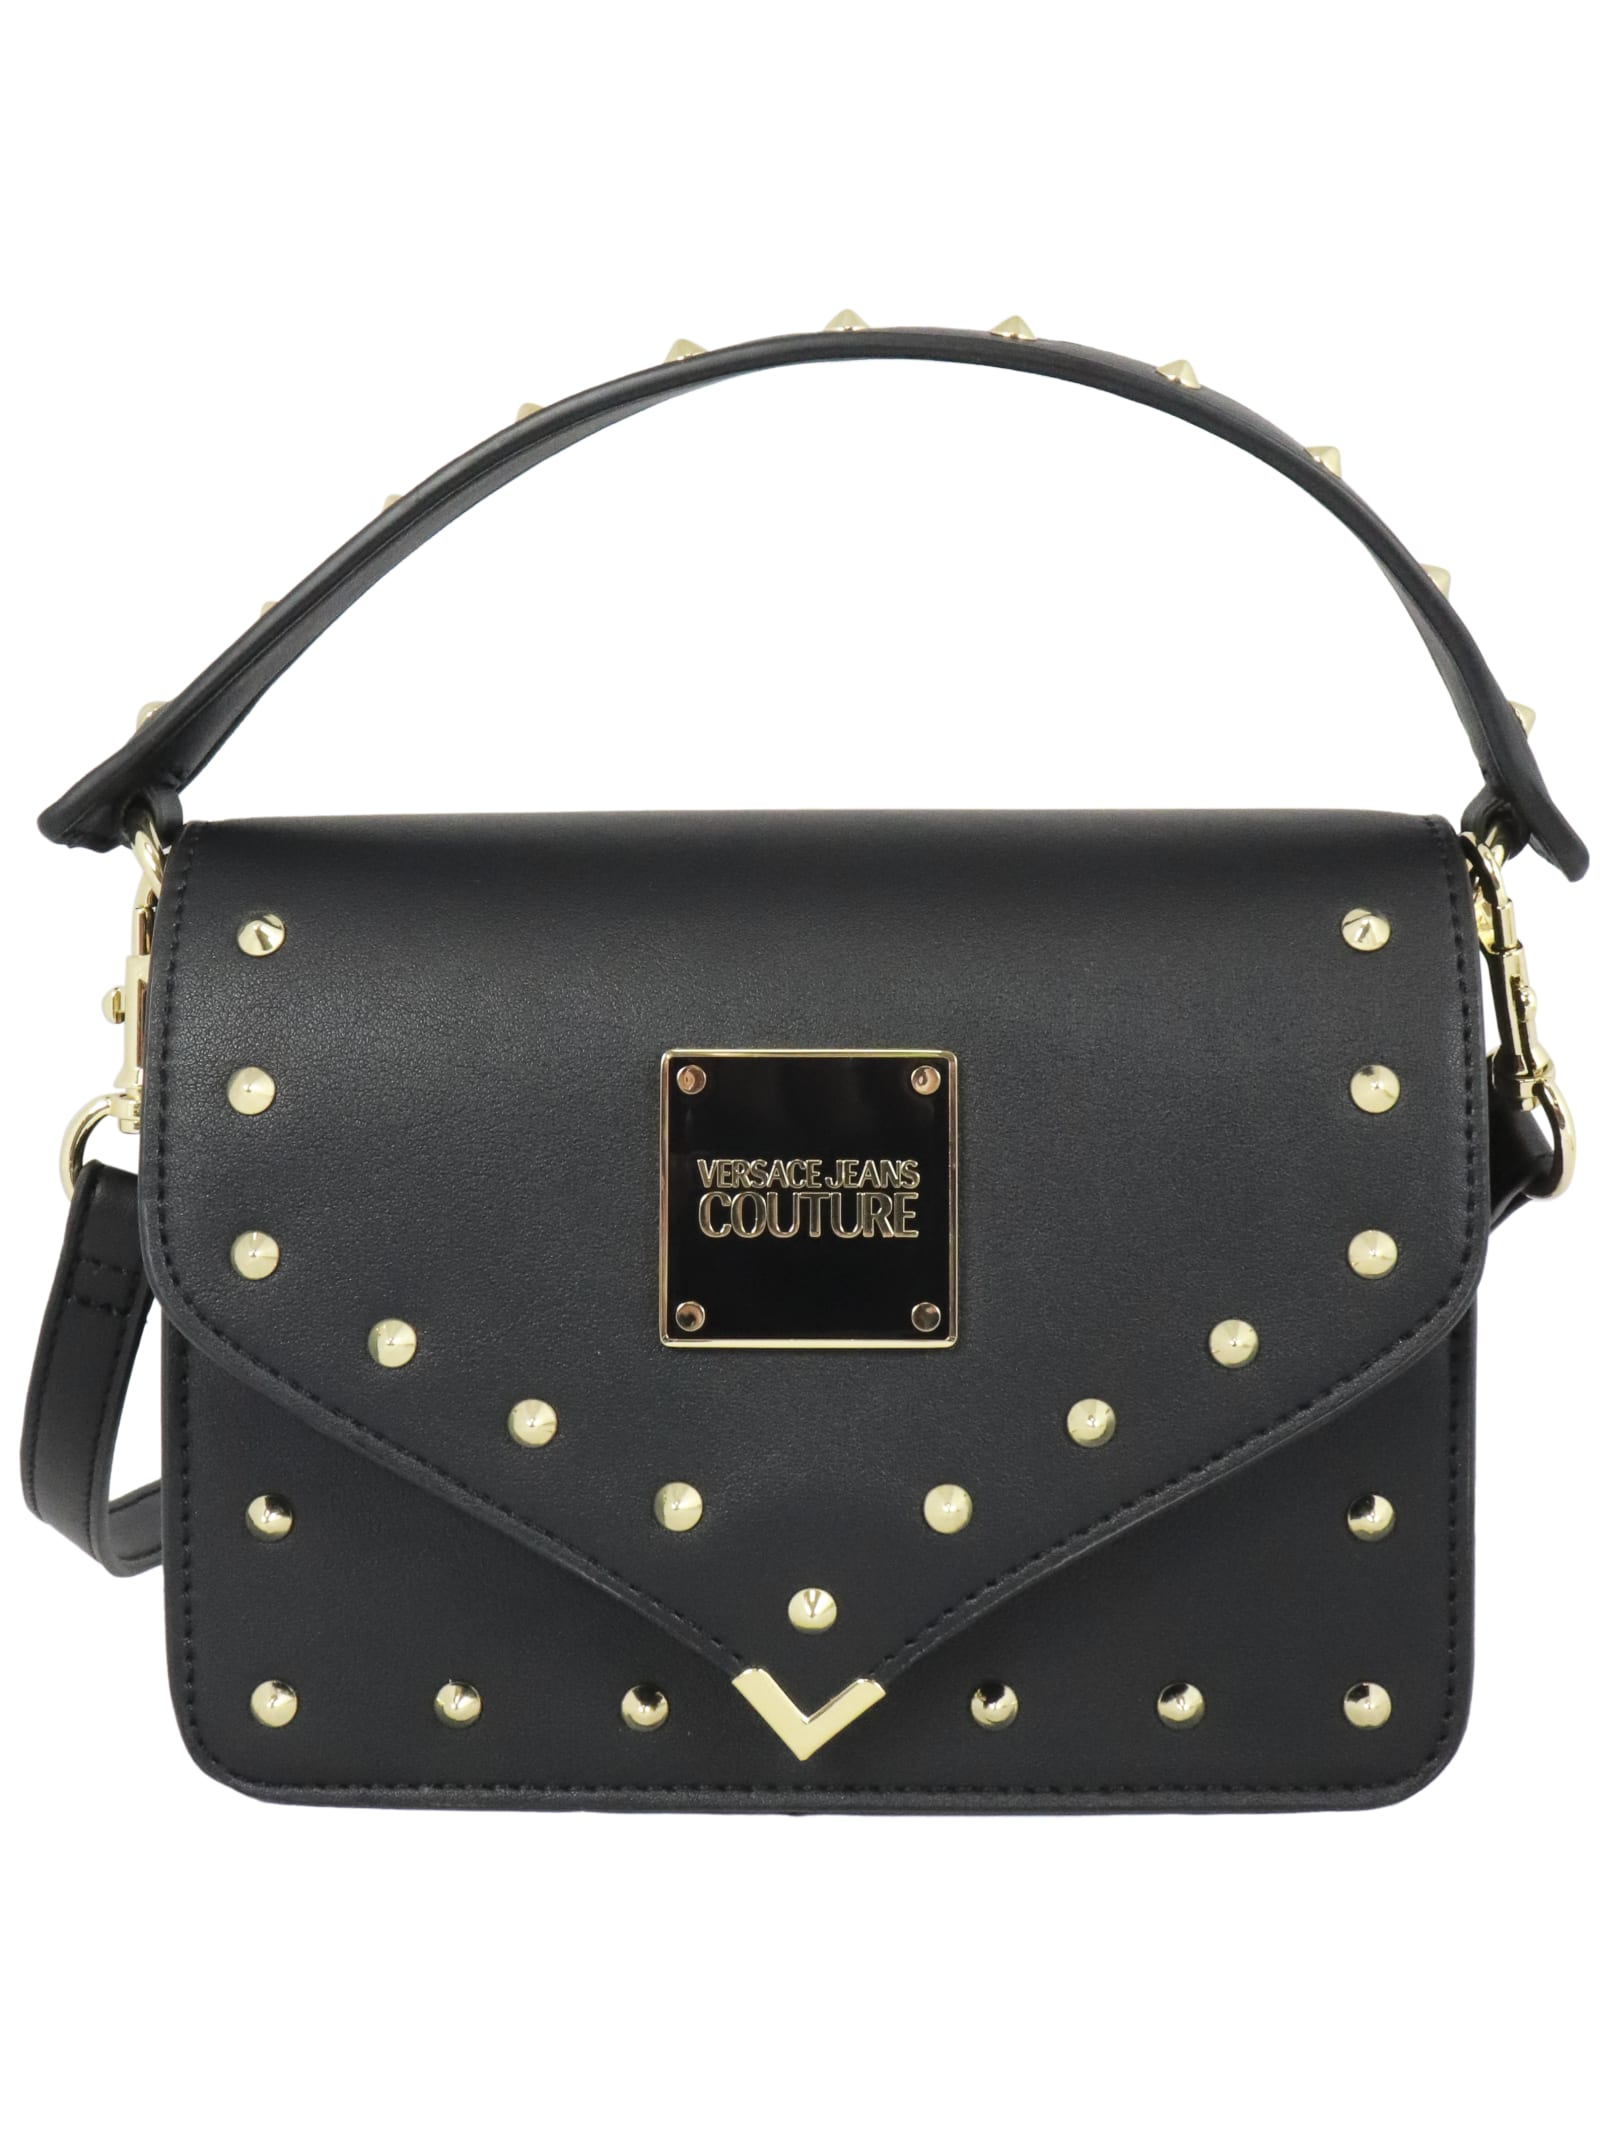 Versace Jeans Couture Borchie Tote